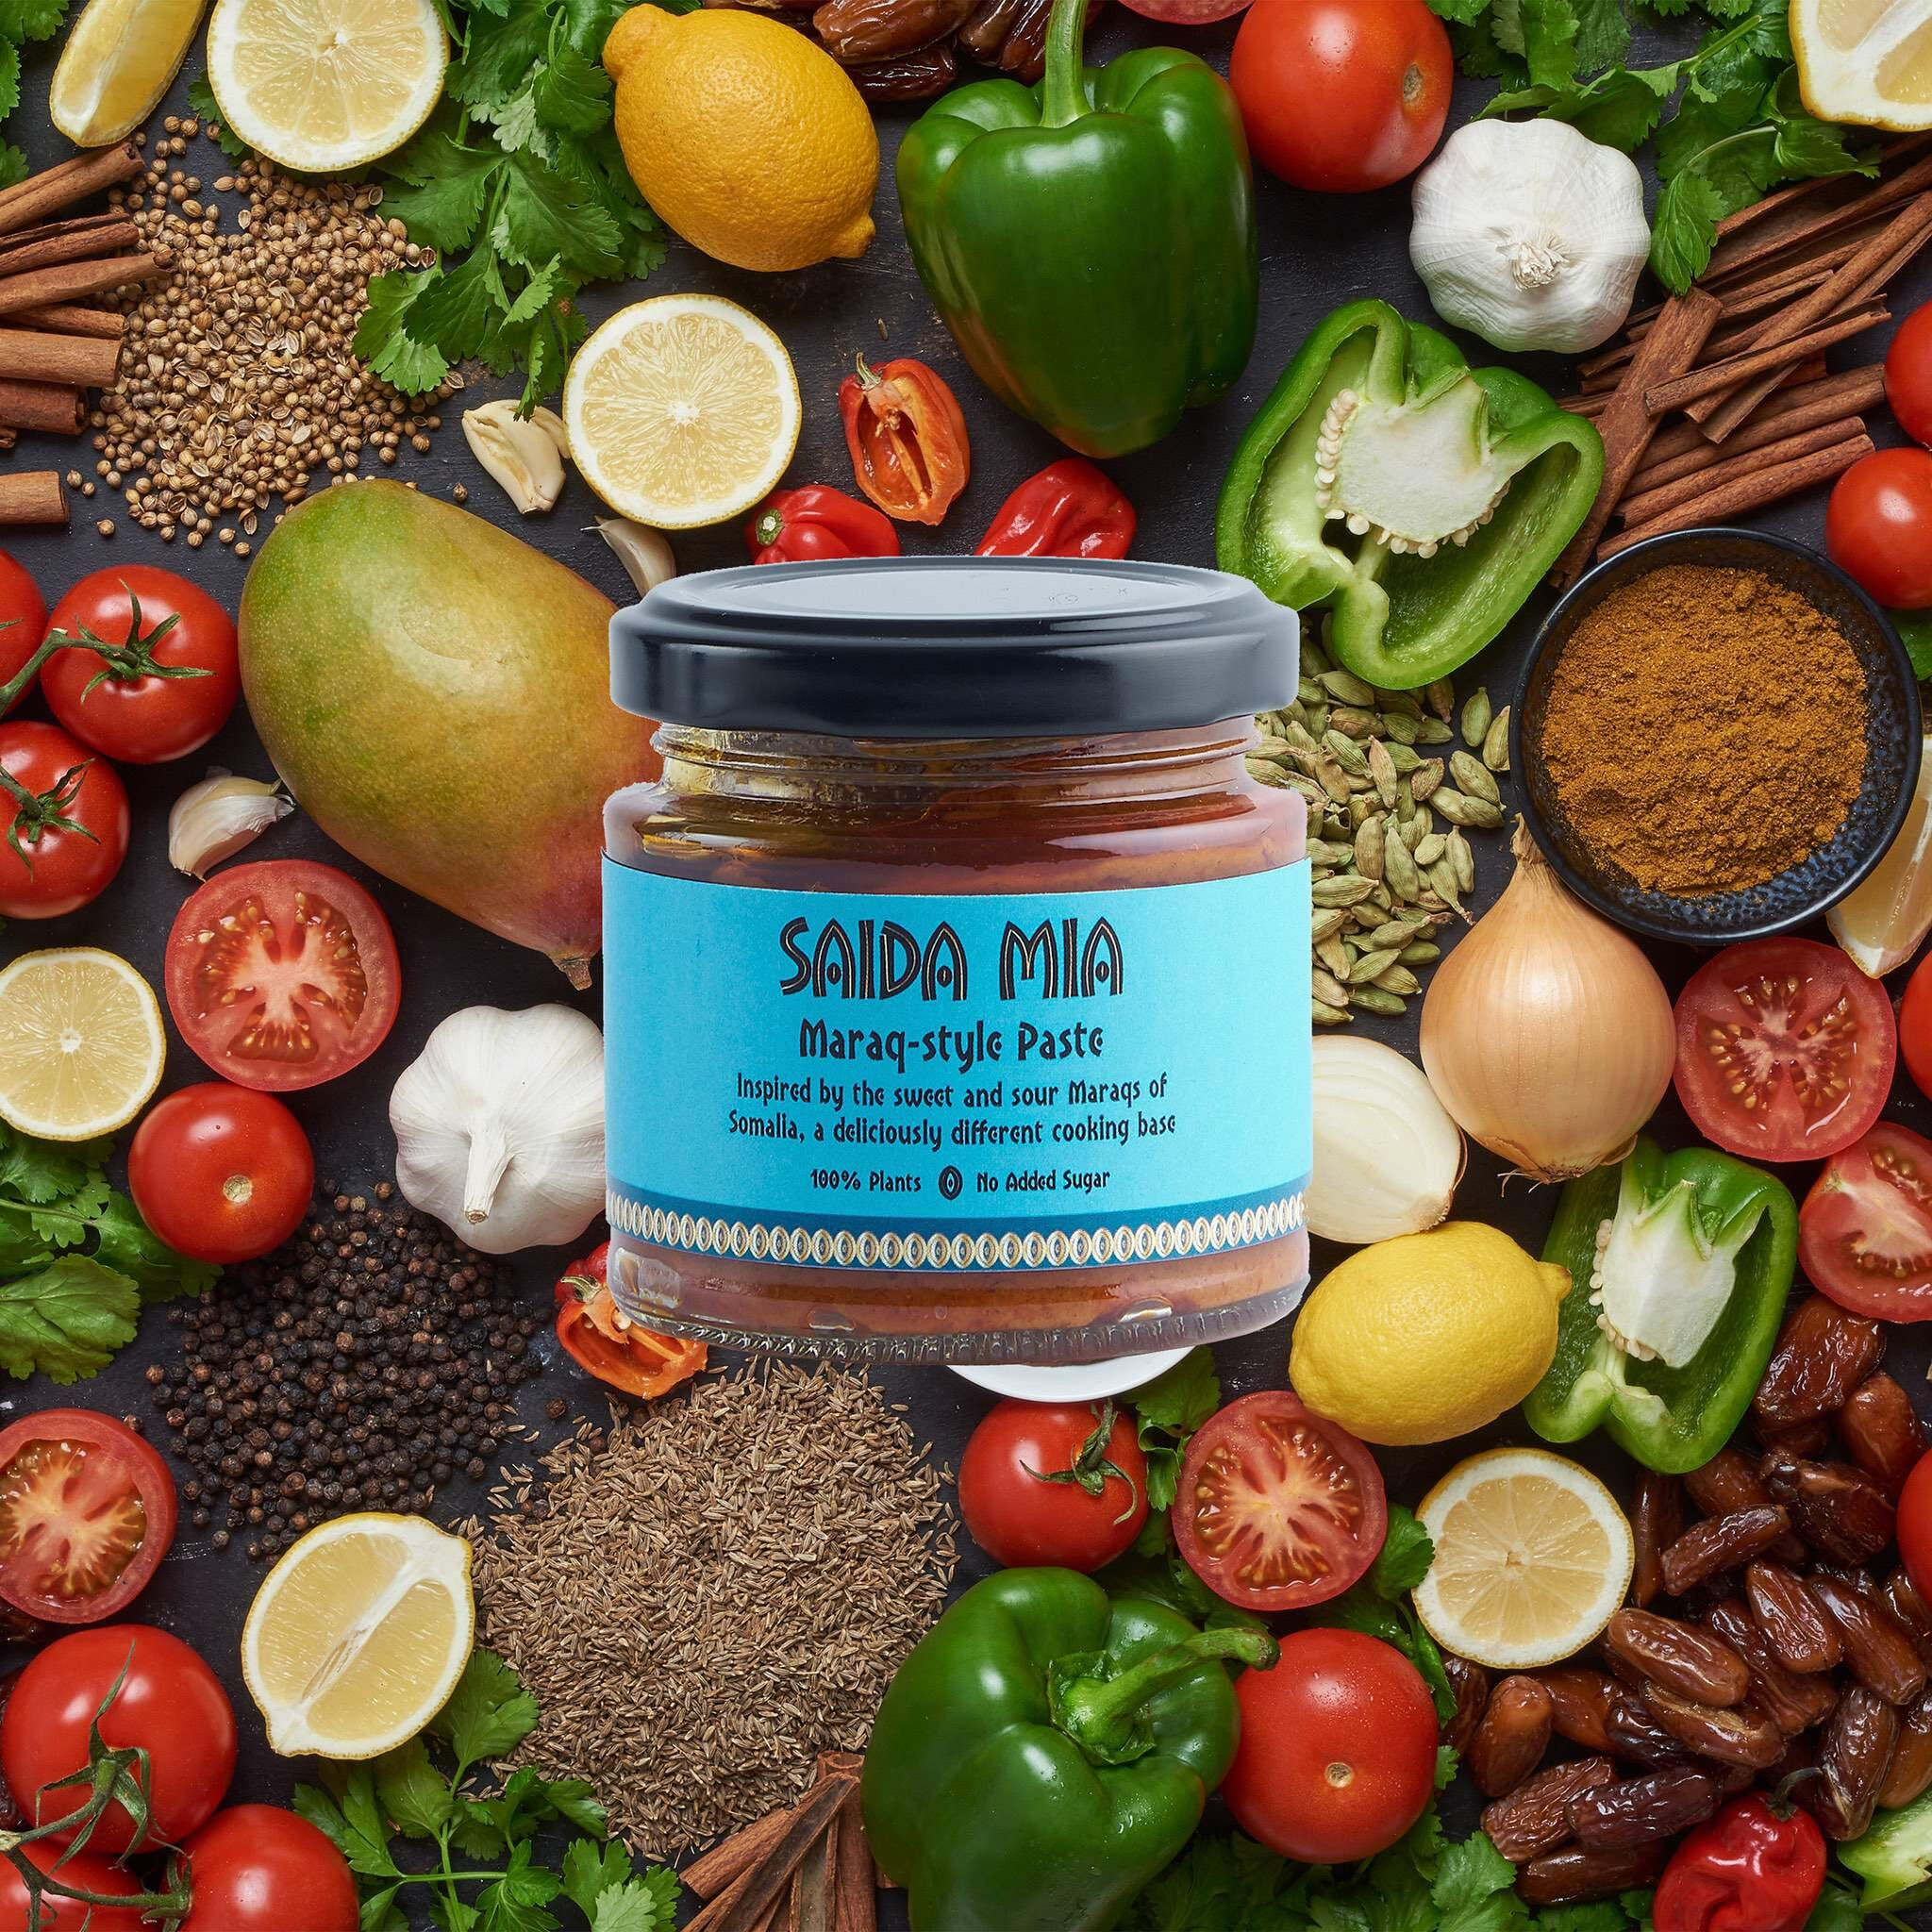 Saida Mia African Products Maraq Paste Pack Ingredients Image